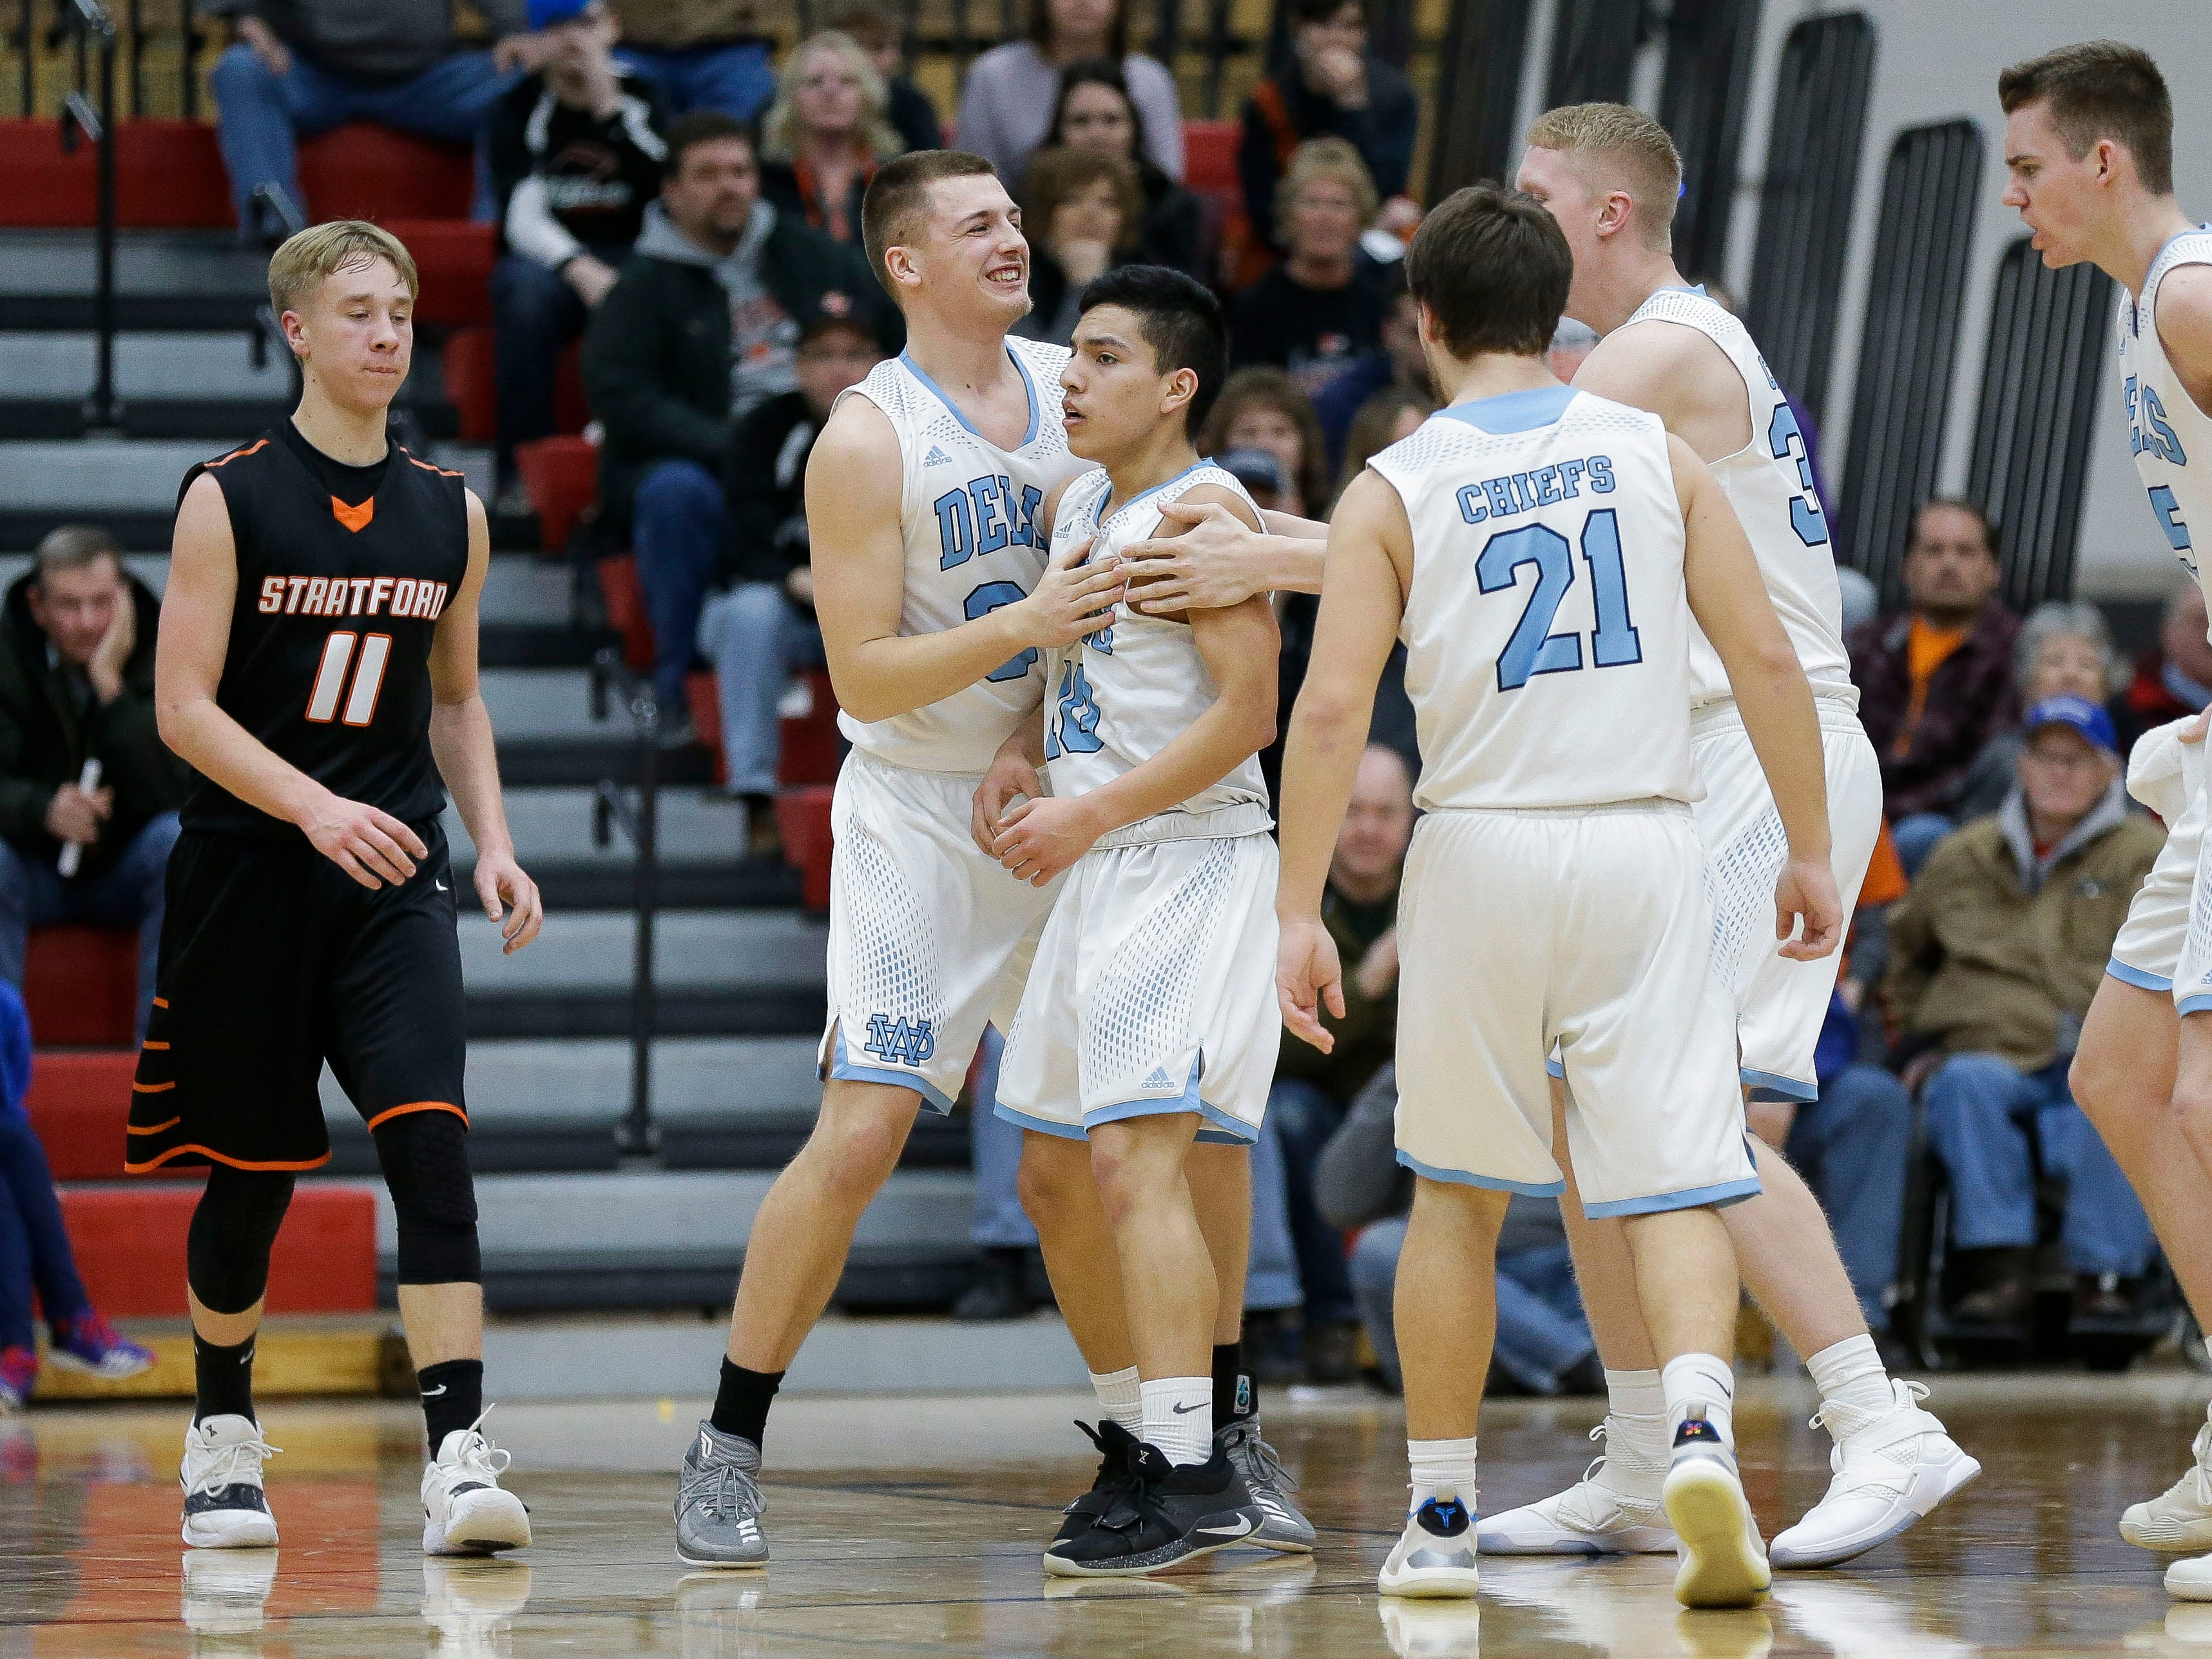 Wisconsin Dells' Bryson Funmaker (10) celebrates with his teammates after hitting a 3-pointer against Stratford in a Division 3 sectional semifinal on Thursday, March 7, 2019, at Stevens Point Area High School in Stevens Point, Wis. Tork Mason/USA TODAY NETWORK-Wisconsin